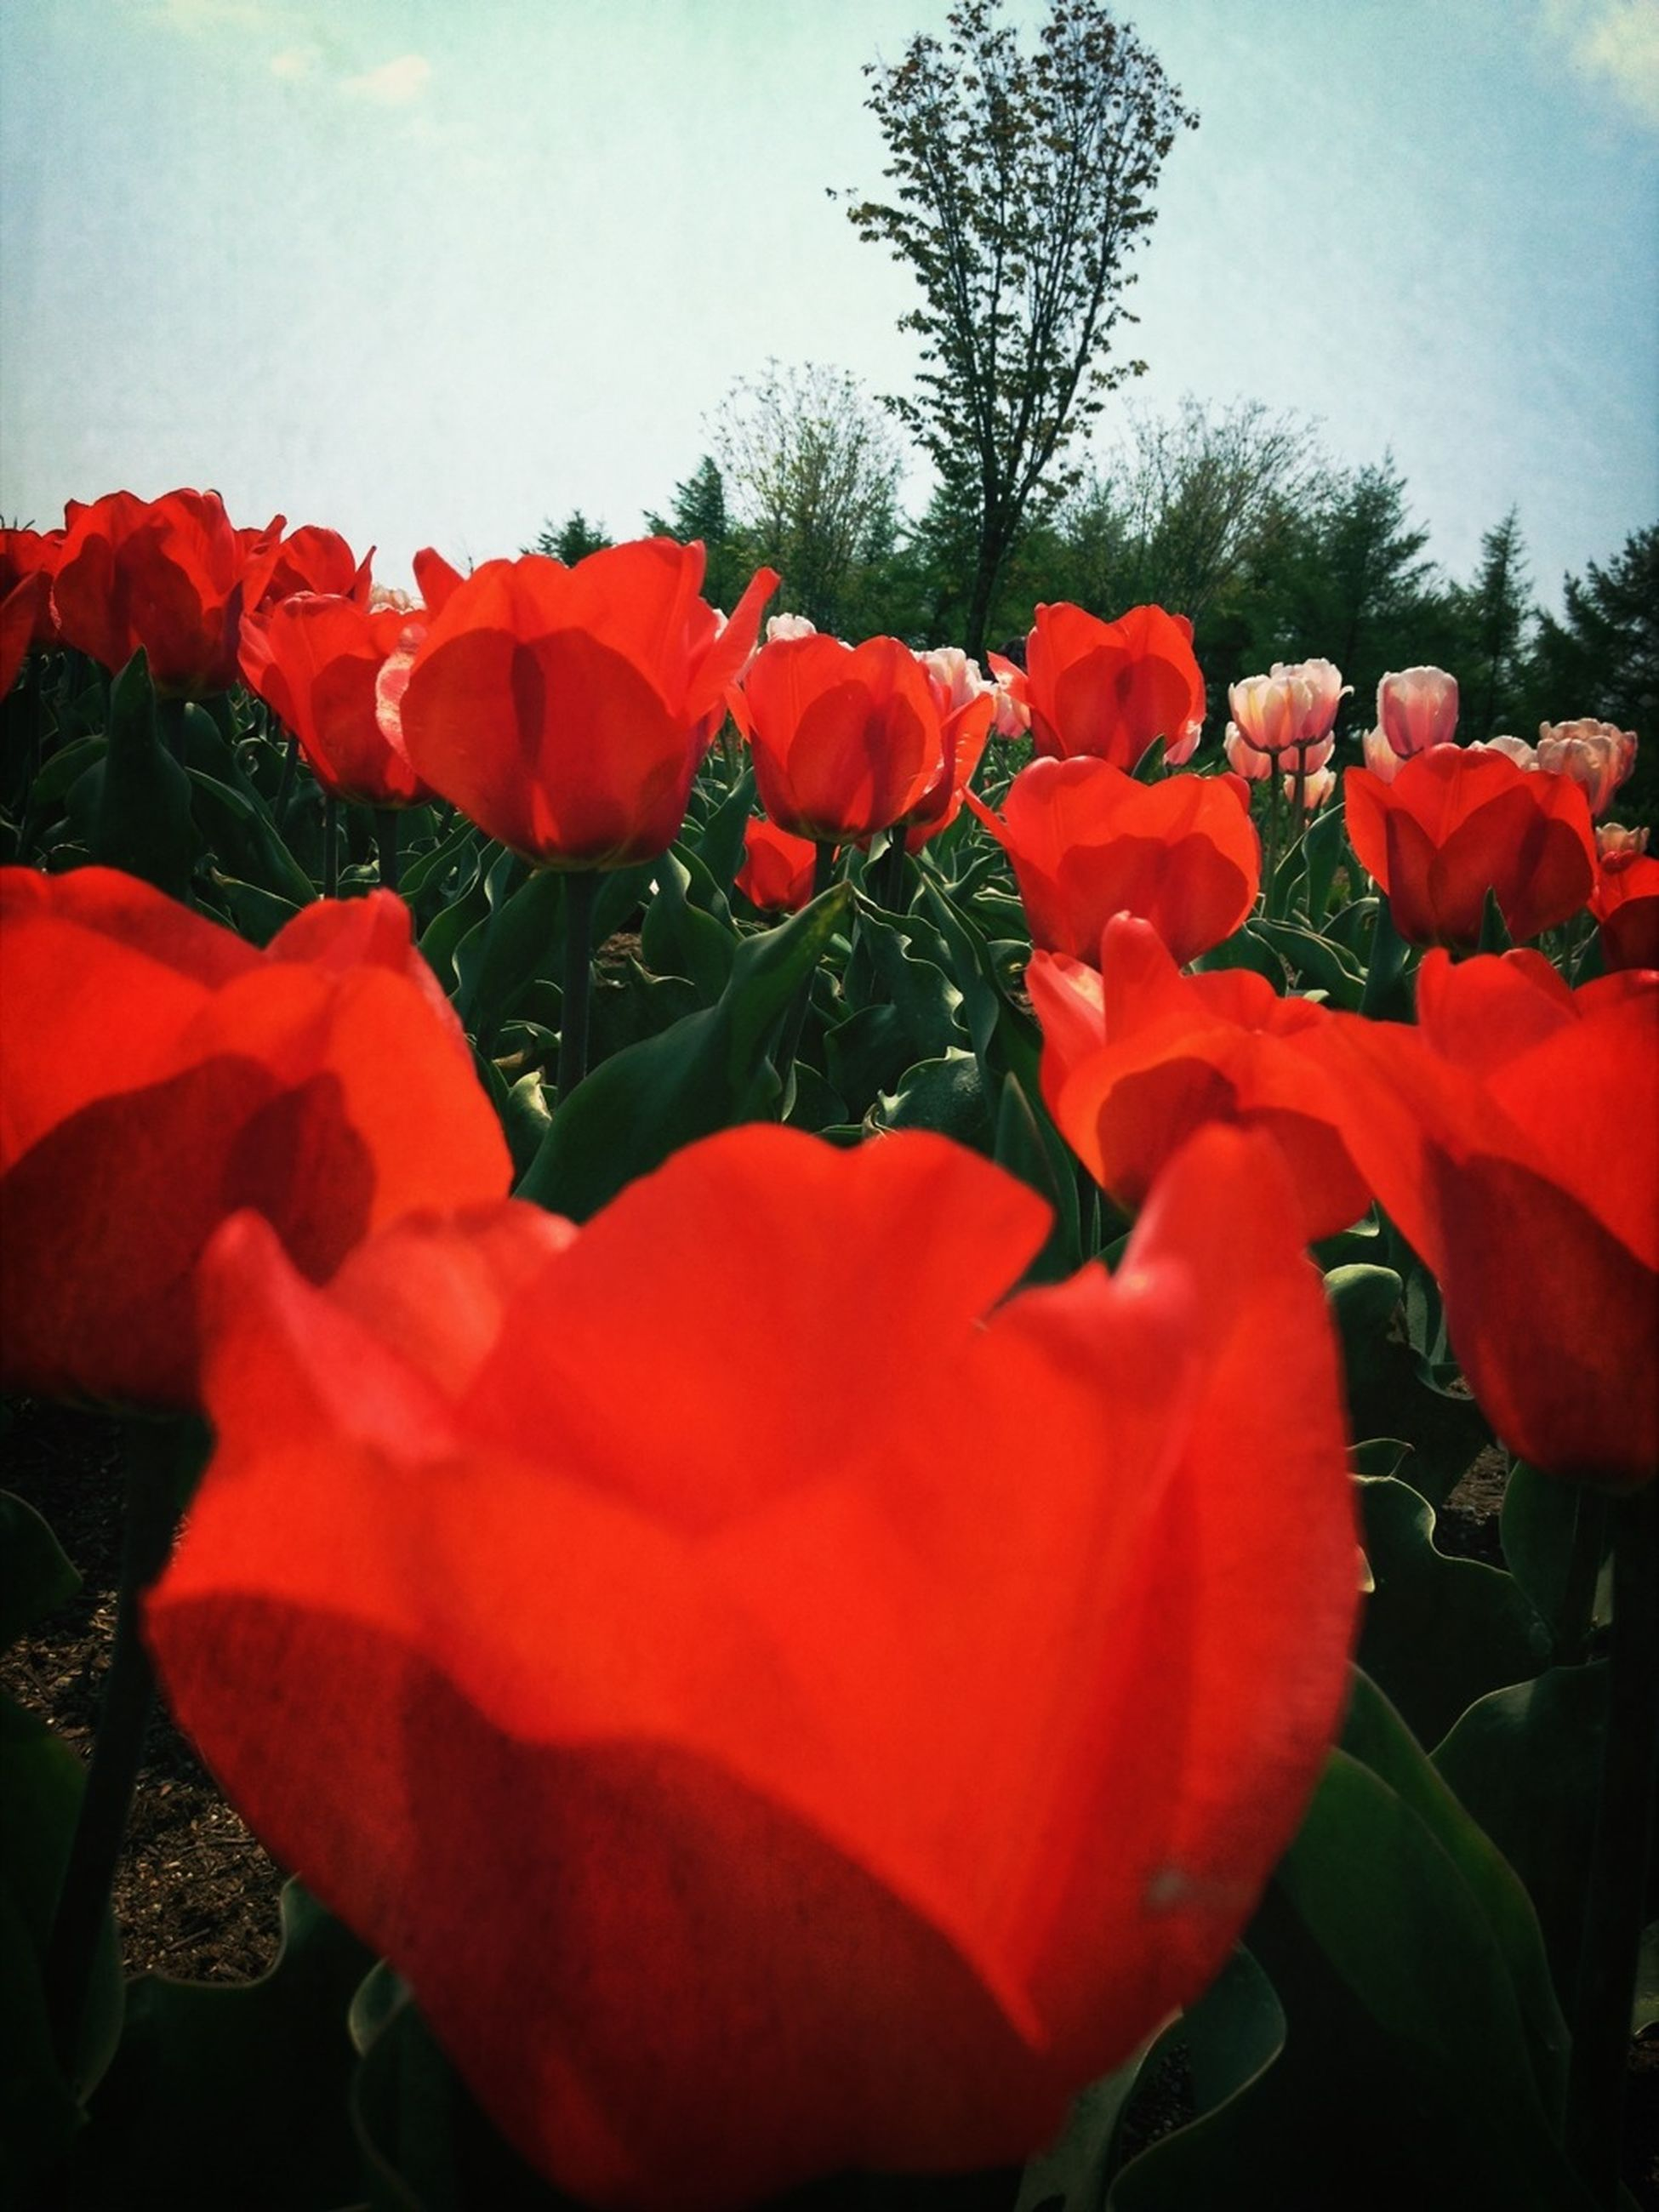 flower, red, petal, freshness, fragility, flower head, growth, beauty in nature, blooming, nature, tulip, plant, close-up, field, in bloom, sky, blossom, day, poppy, leaf